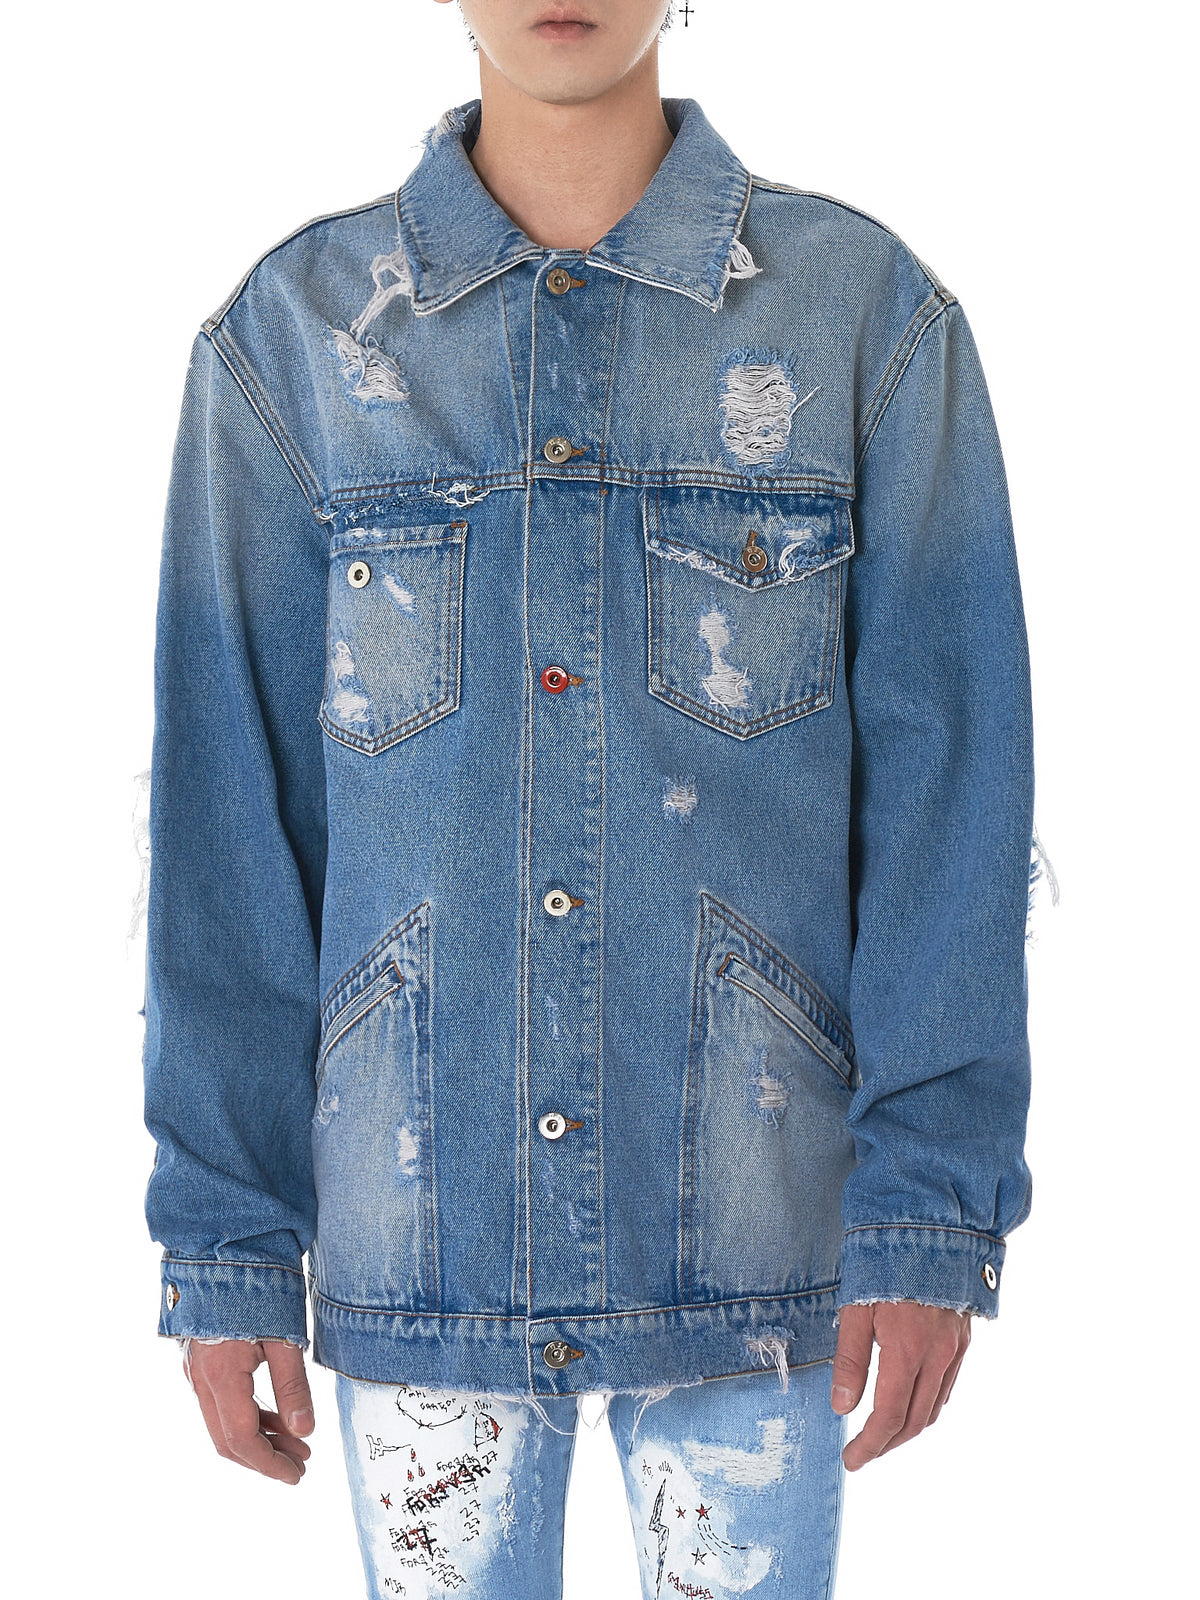 Distressed Denim Jacket (MPAX-LIGHT-BLUE)